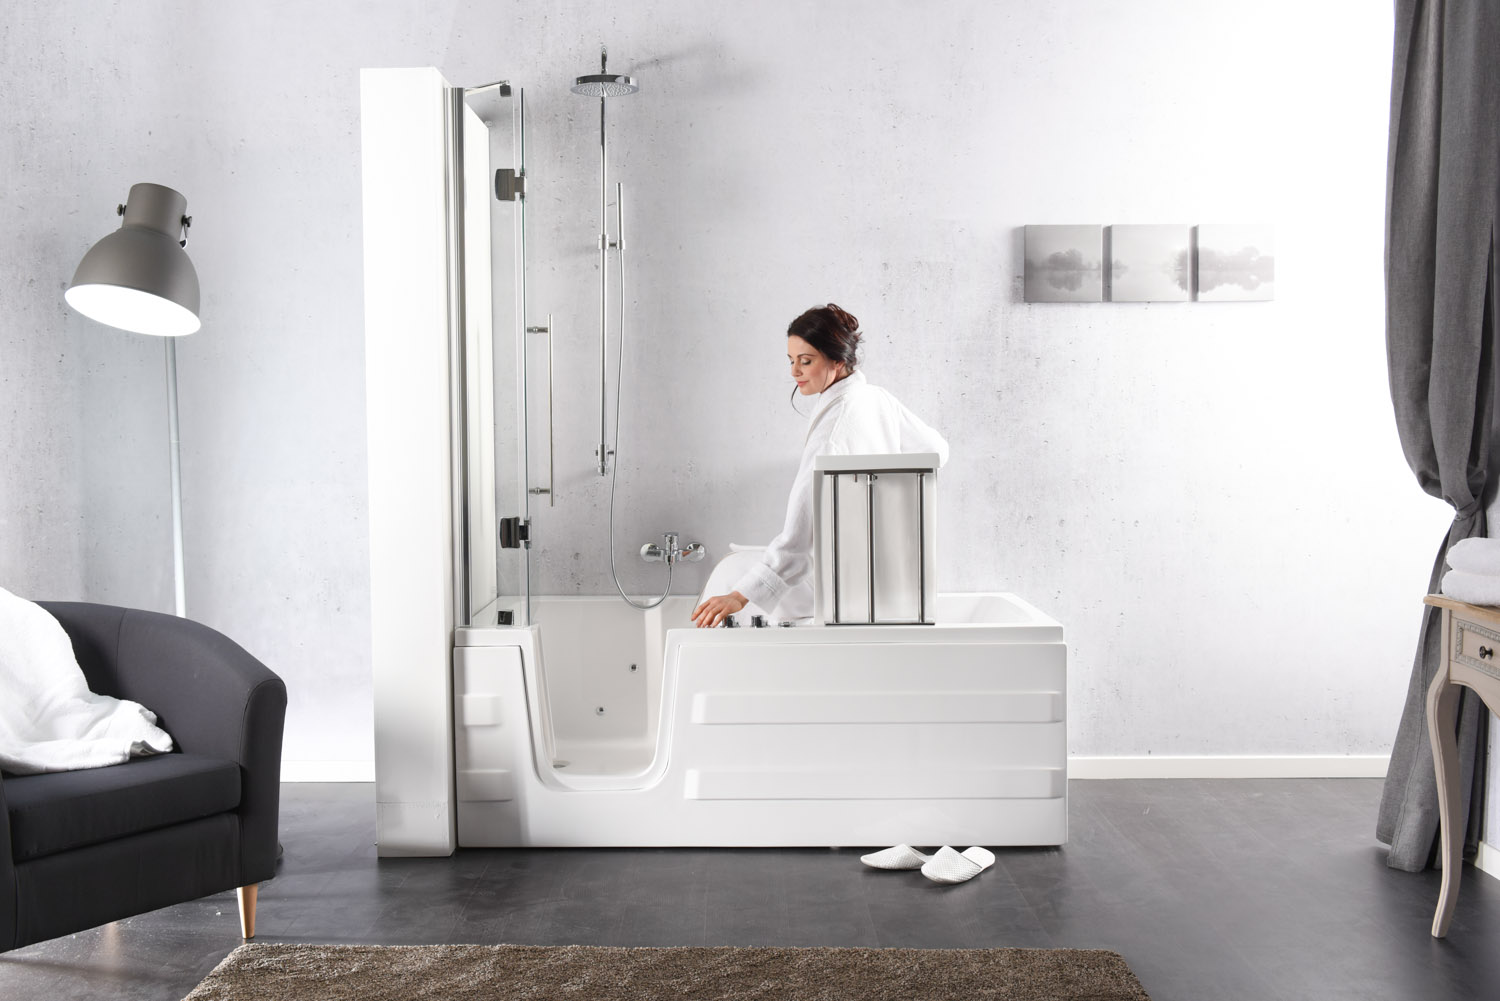 Design for all il bagno - Bagno portatori handicap ...